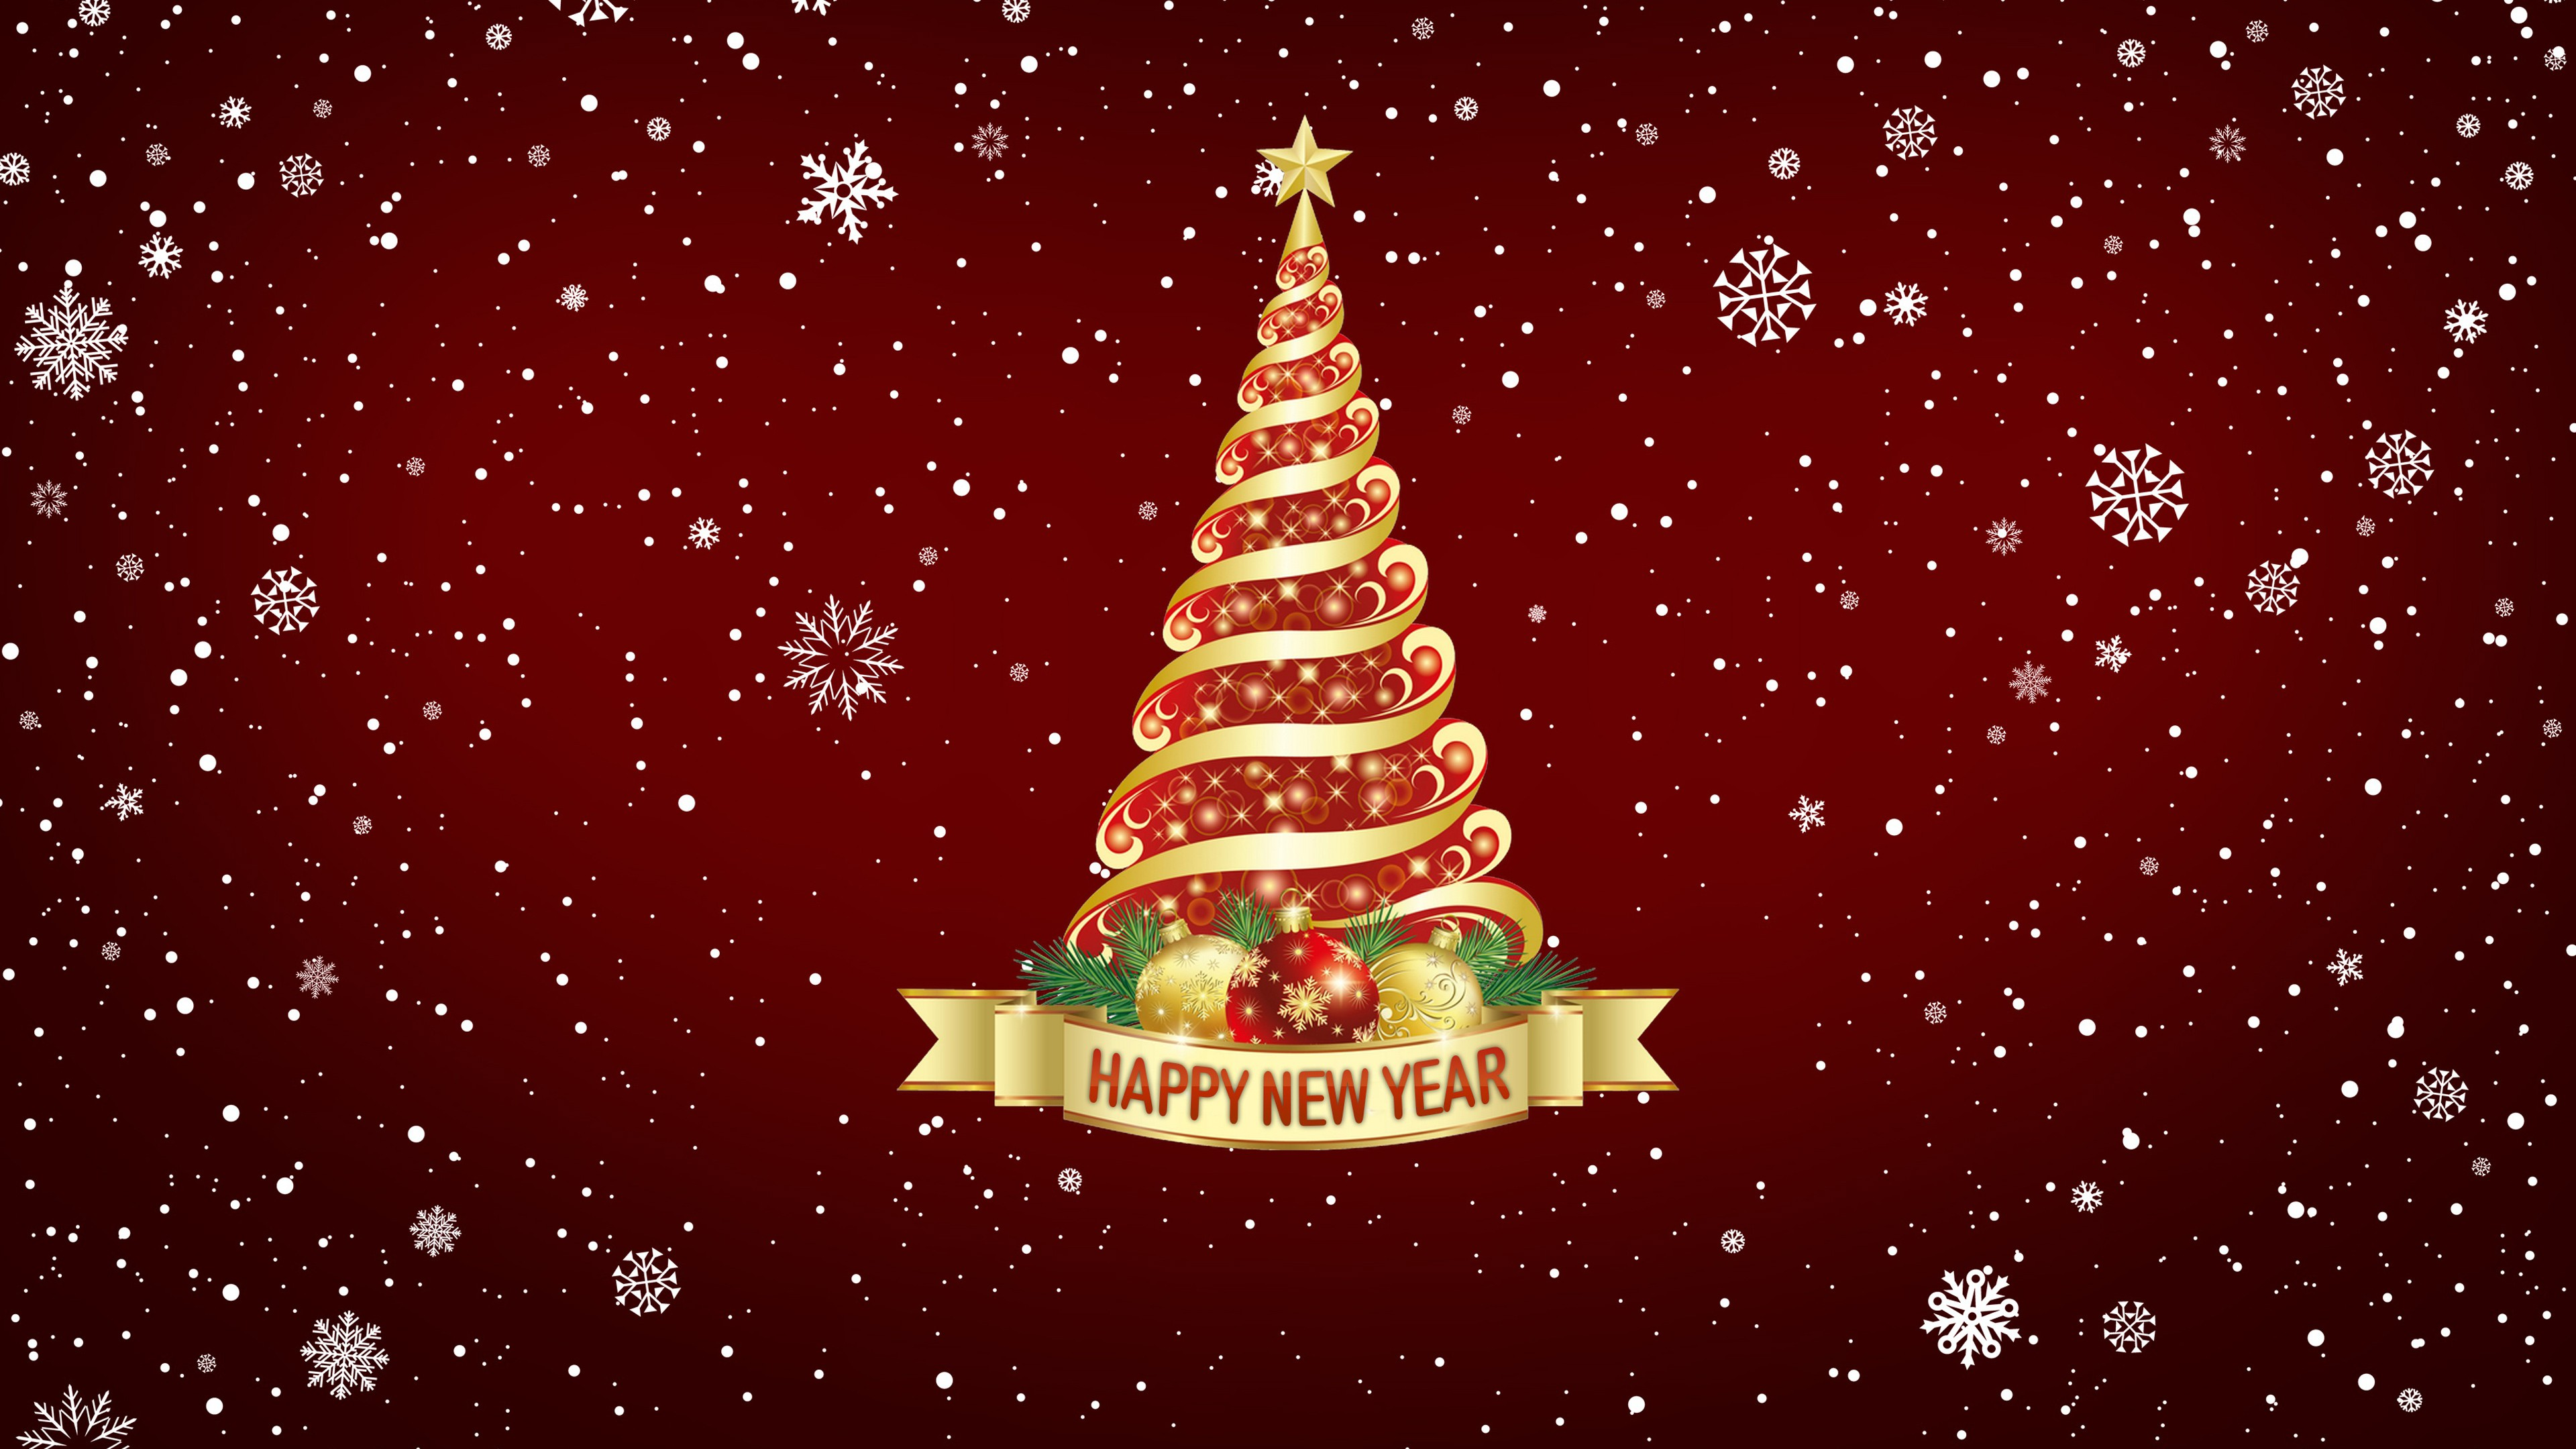 Christmas Tree Images Hd.Happy New Year Christmas Tree Snowflake Background 4k